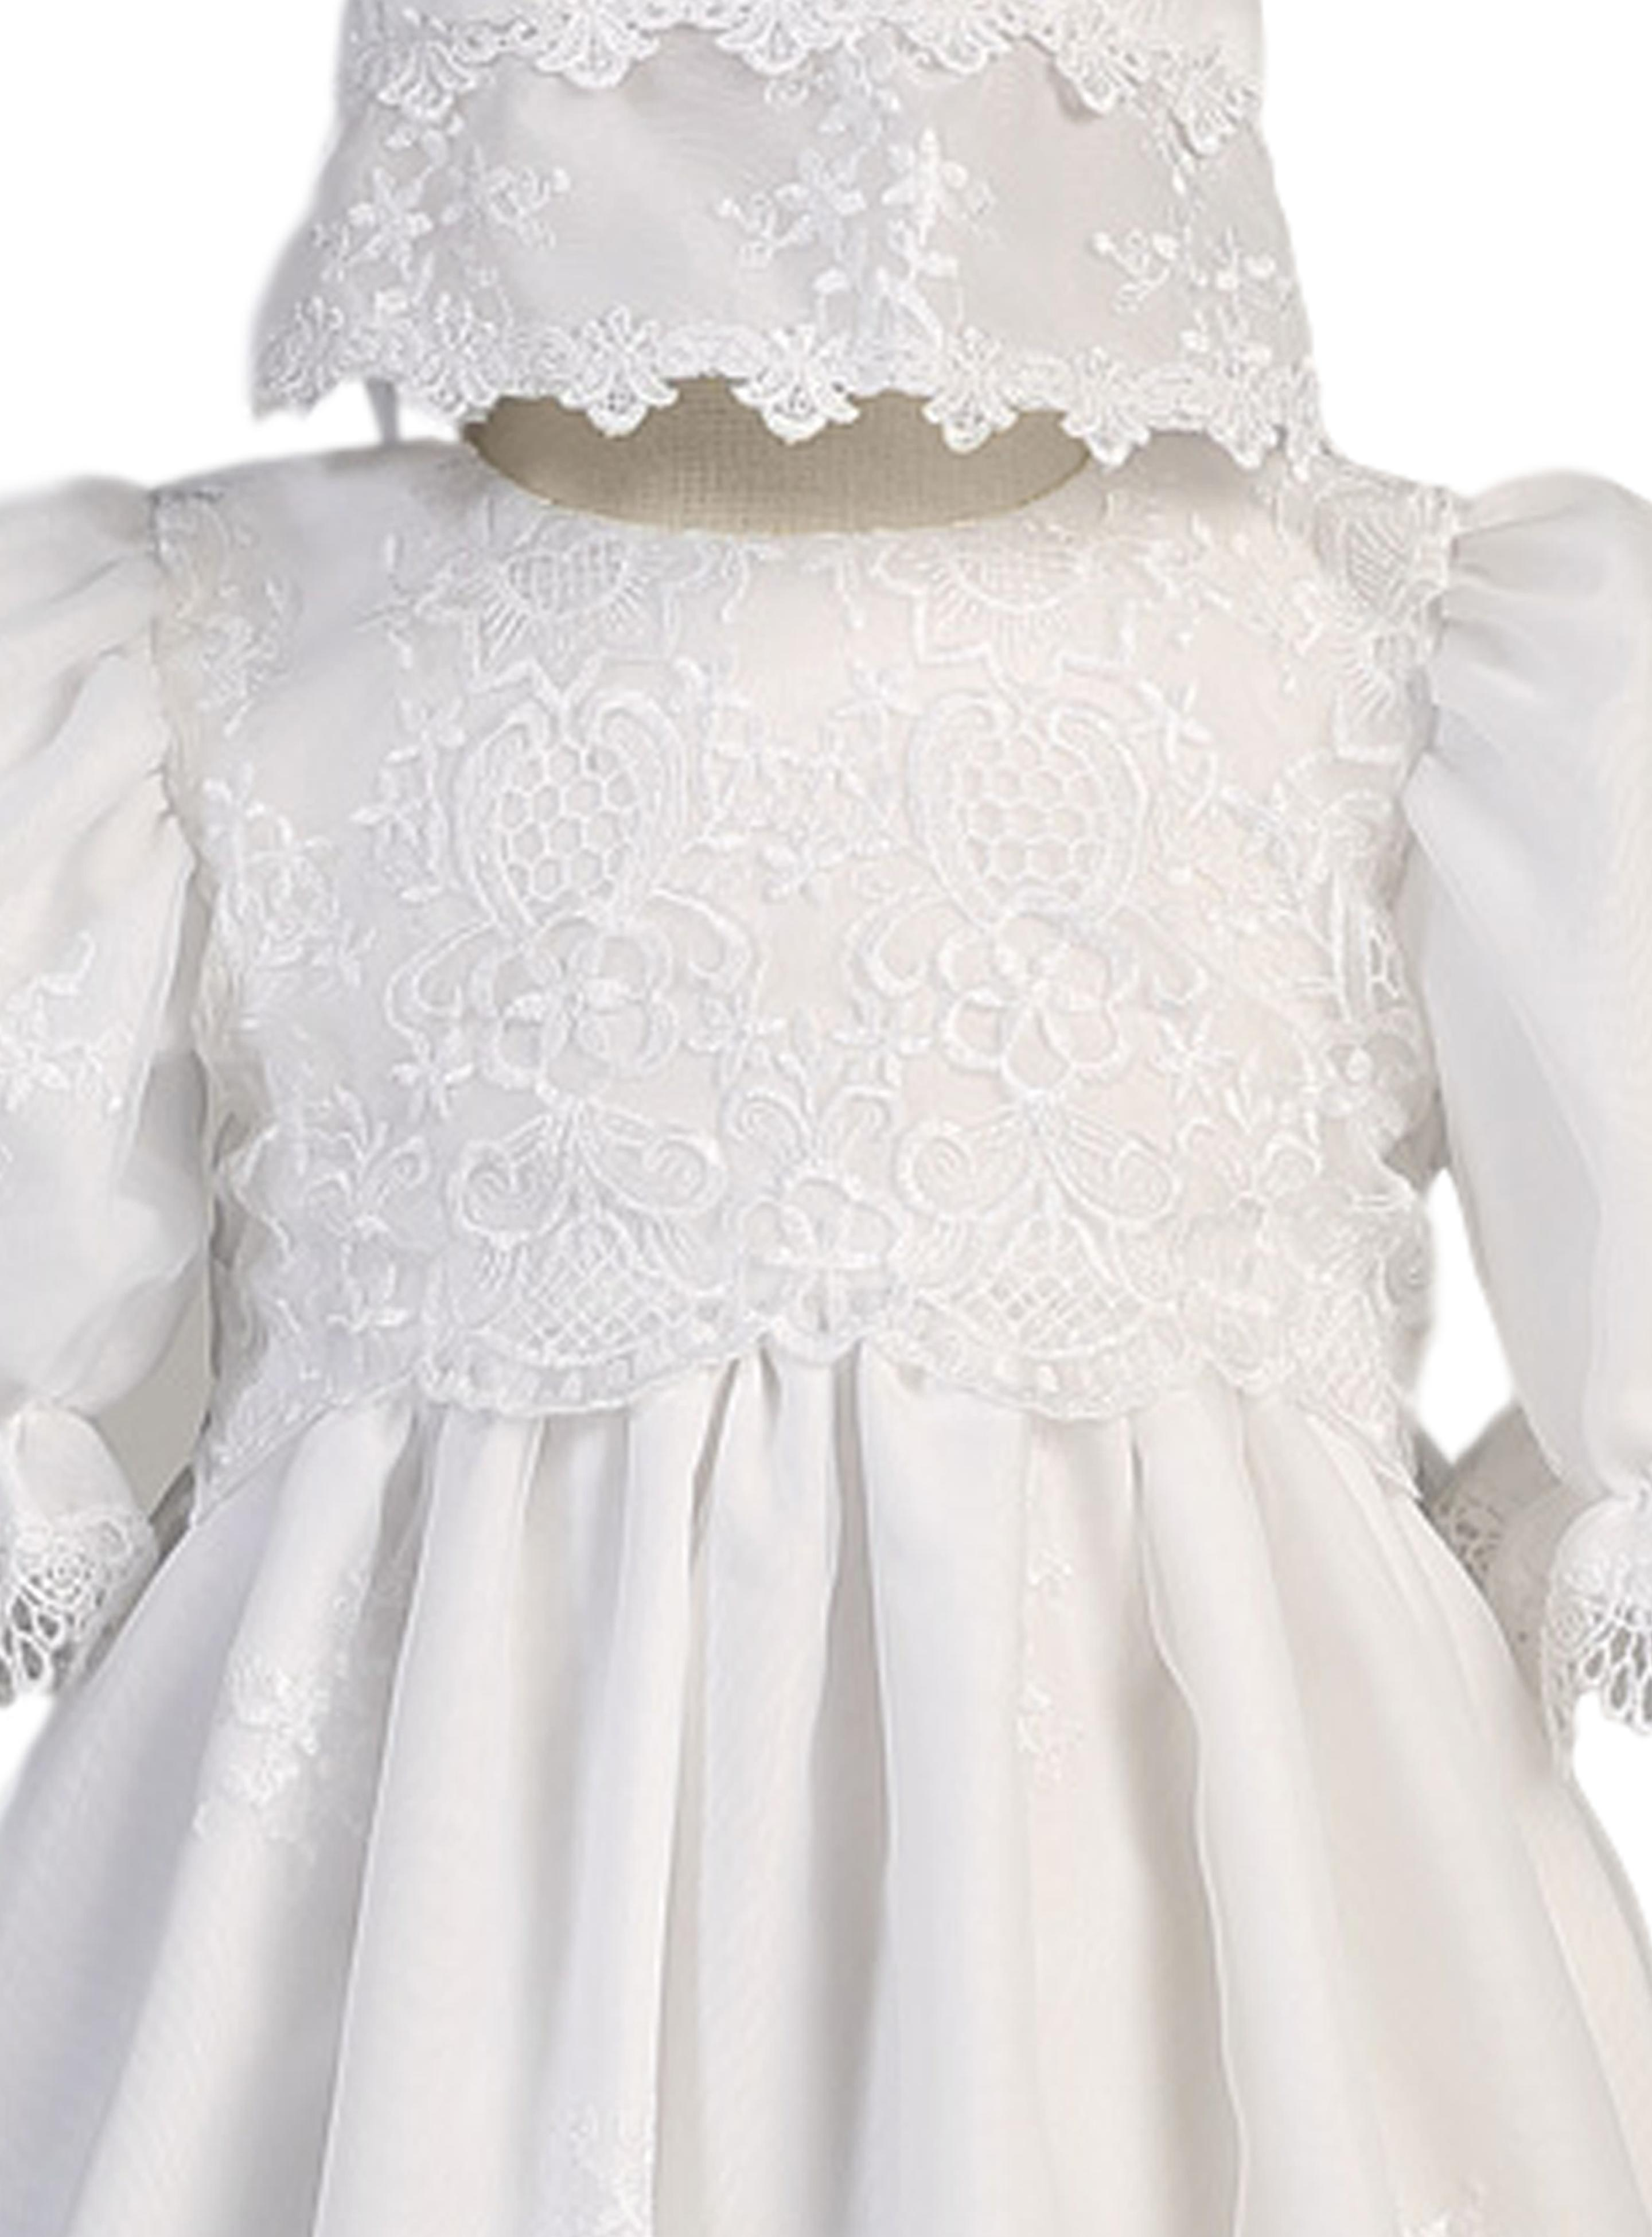 3b65dc7d66d59 Embroidered Organza Girls Christening Gown w. Venice Lace 0-18m